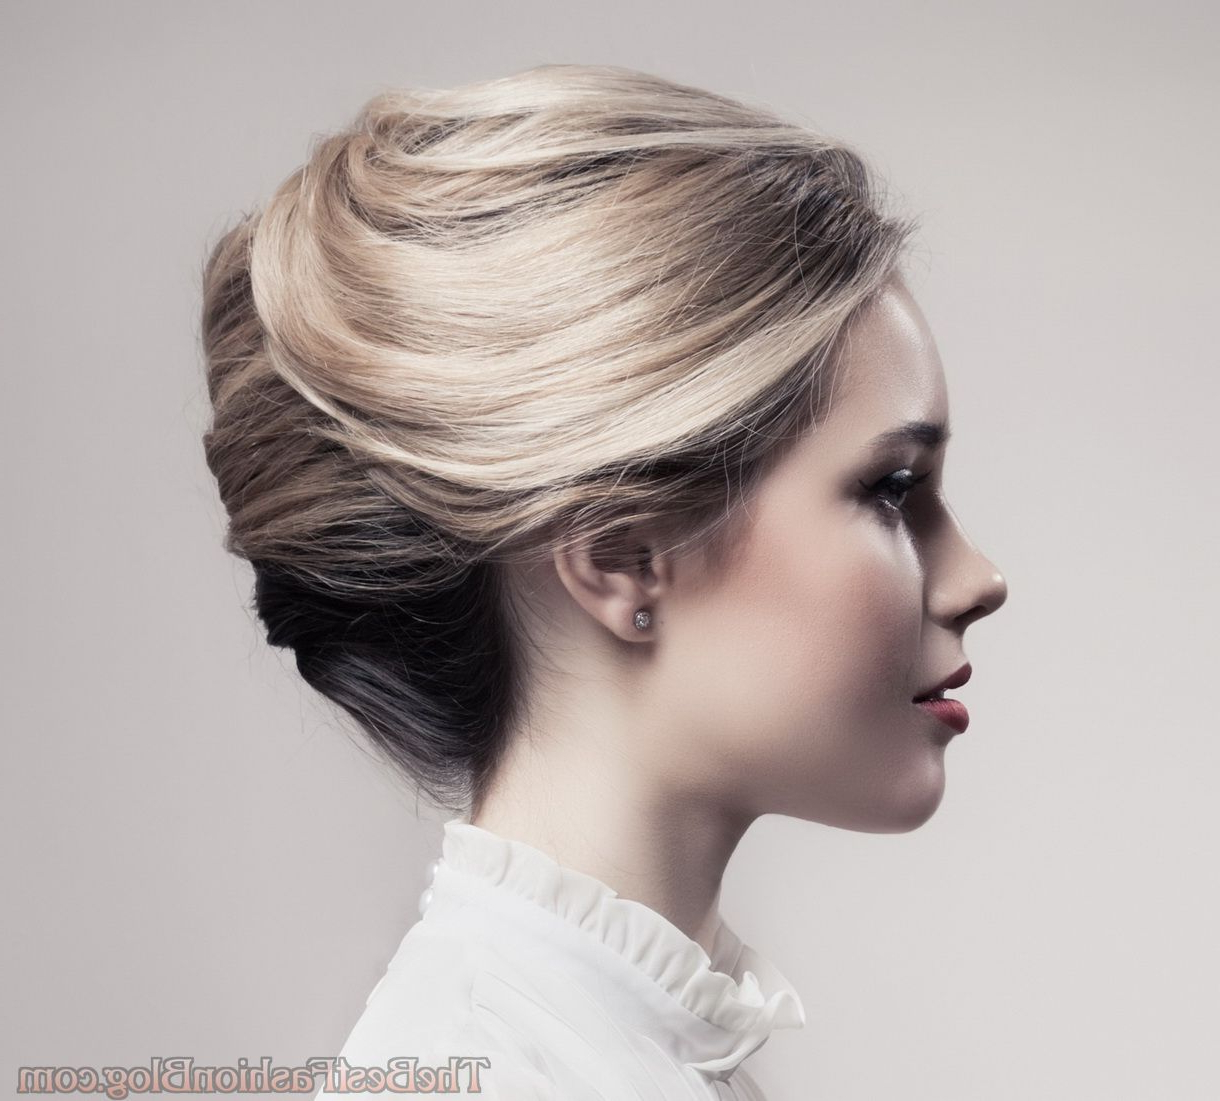 Recent Medium Hairstyles For Special Occasions With Special Occasion Hairstyles For Medium Hair – Hairstyle For Women & Man (Gallery 14 of 20)